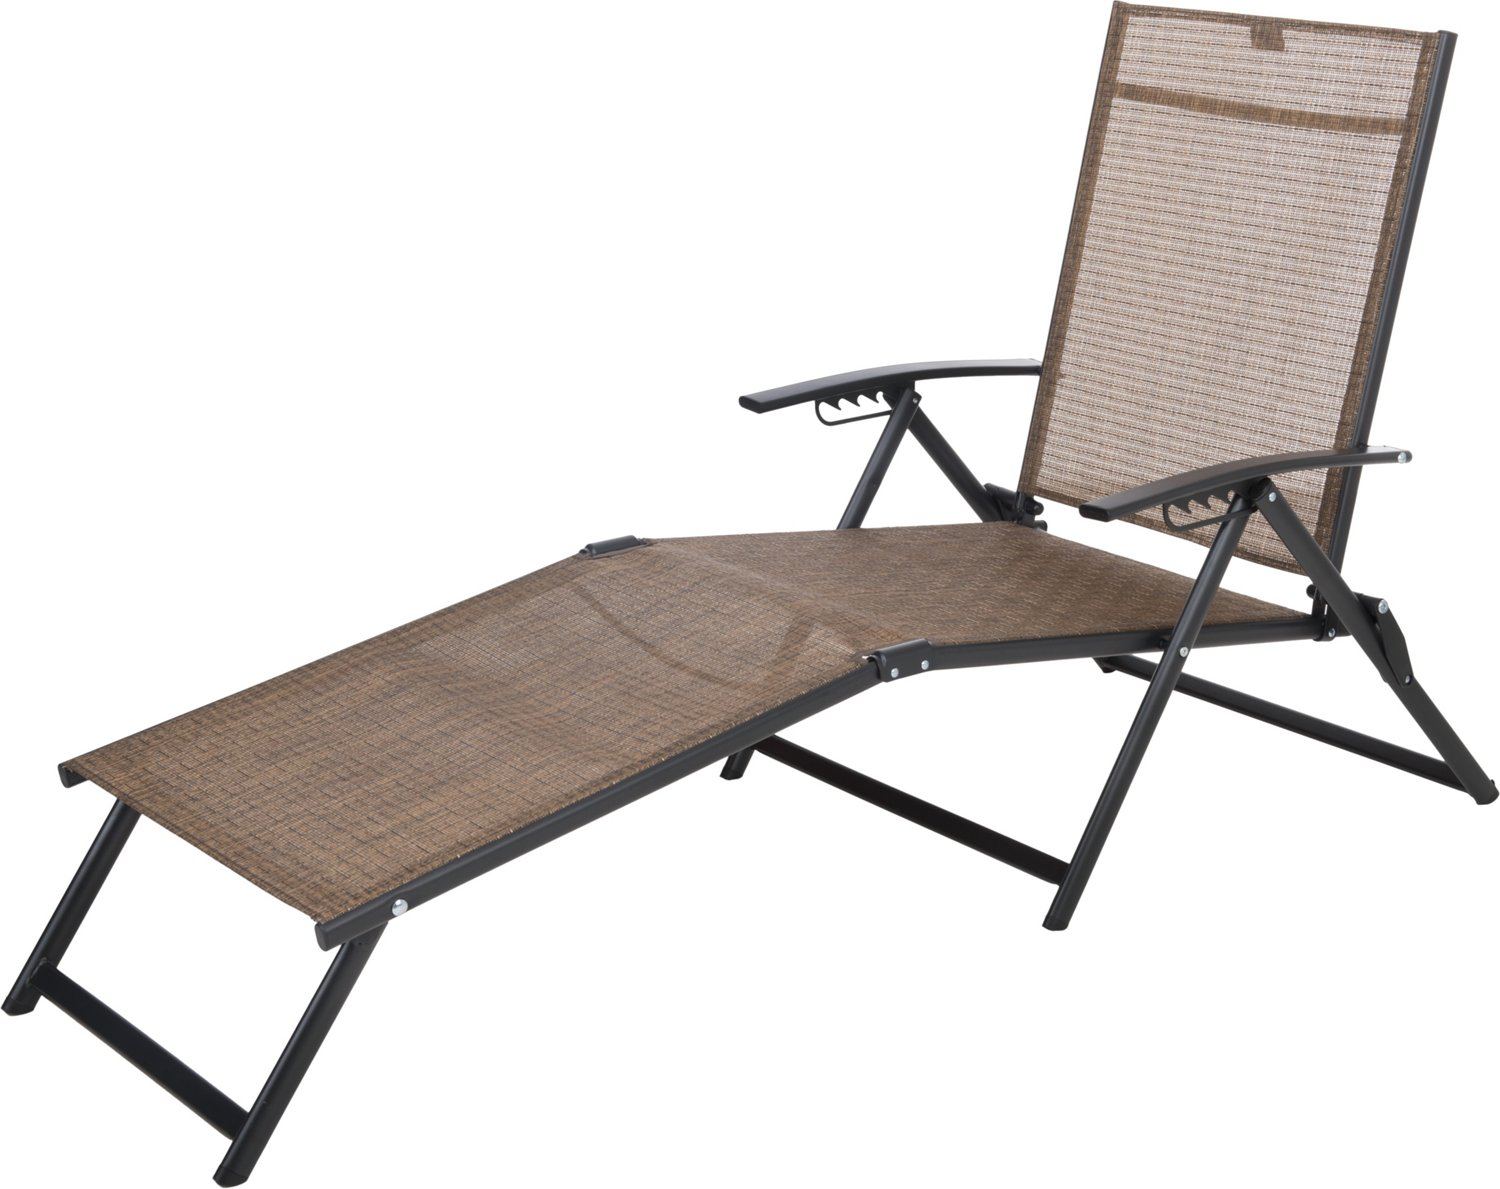 Mosaic Folding Sling Chaise Lounge  sc 1 st  Academy Sports + Outdoors & Patio Furniture | Patio Sets Patio Chairs Patio Swings u0026 more ...